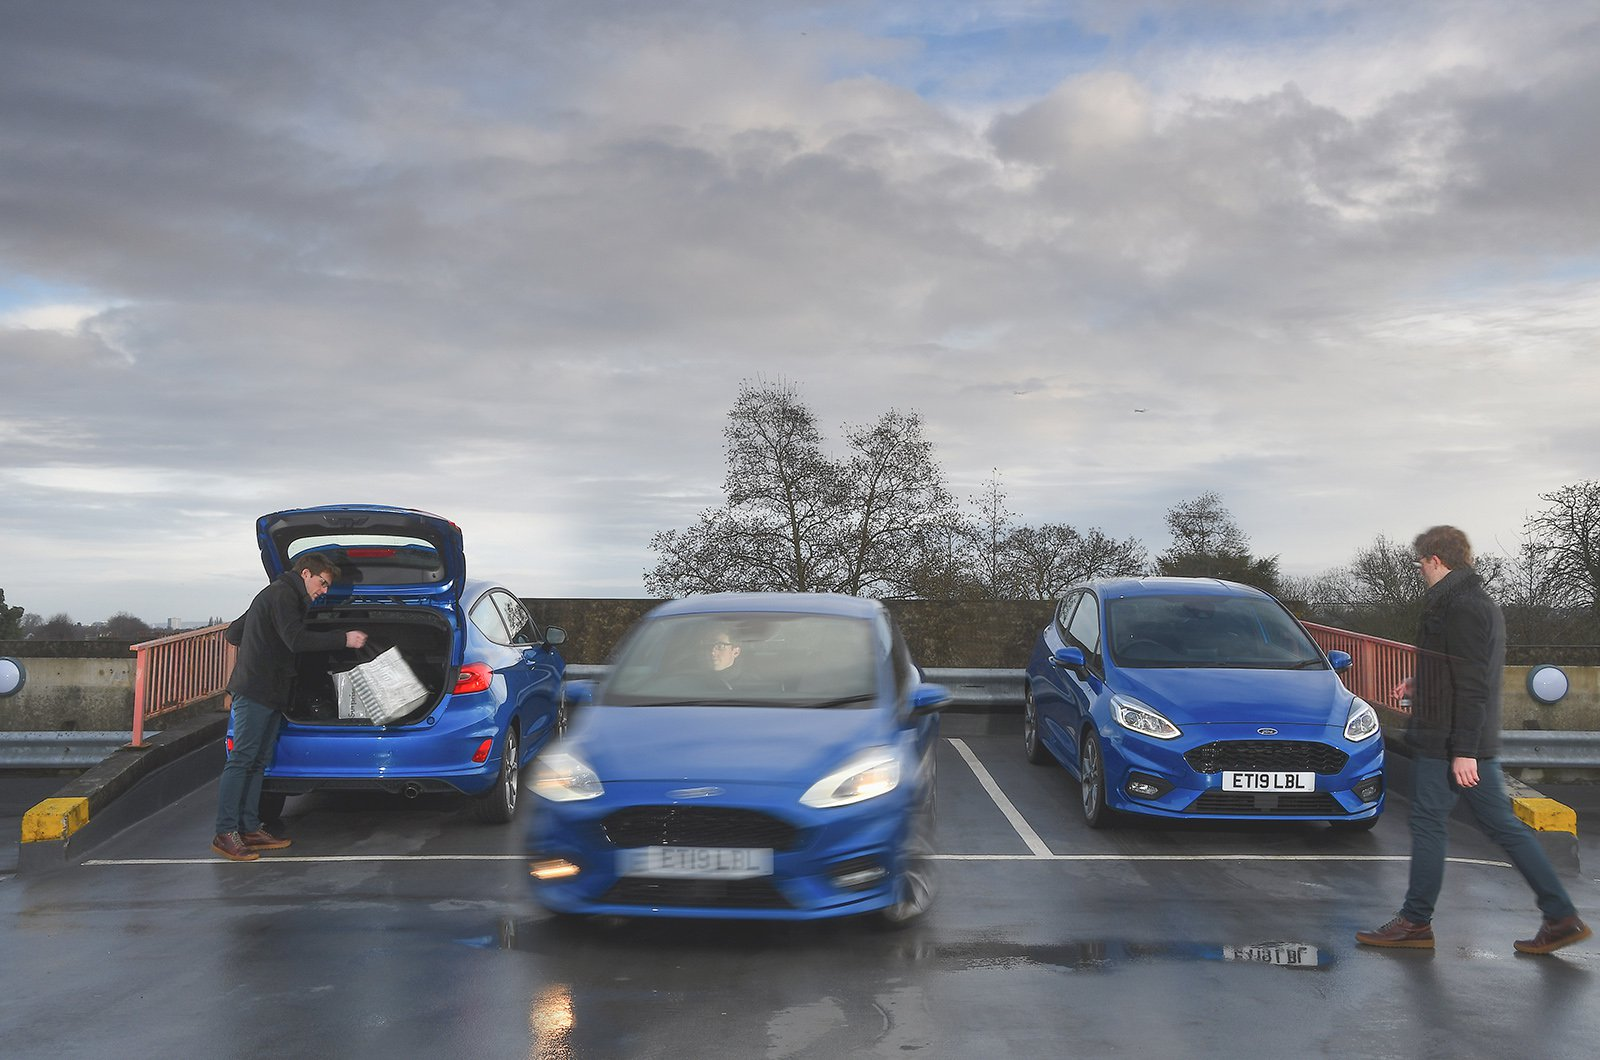 Used Ford Fiesta fitting in with daily life